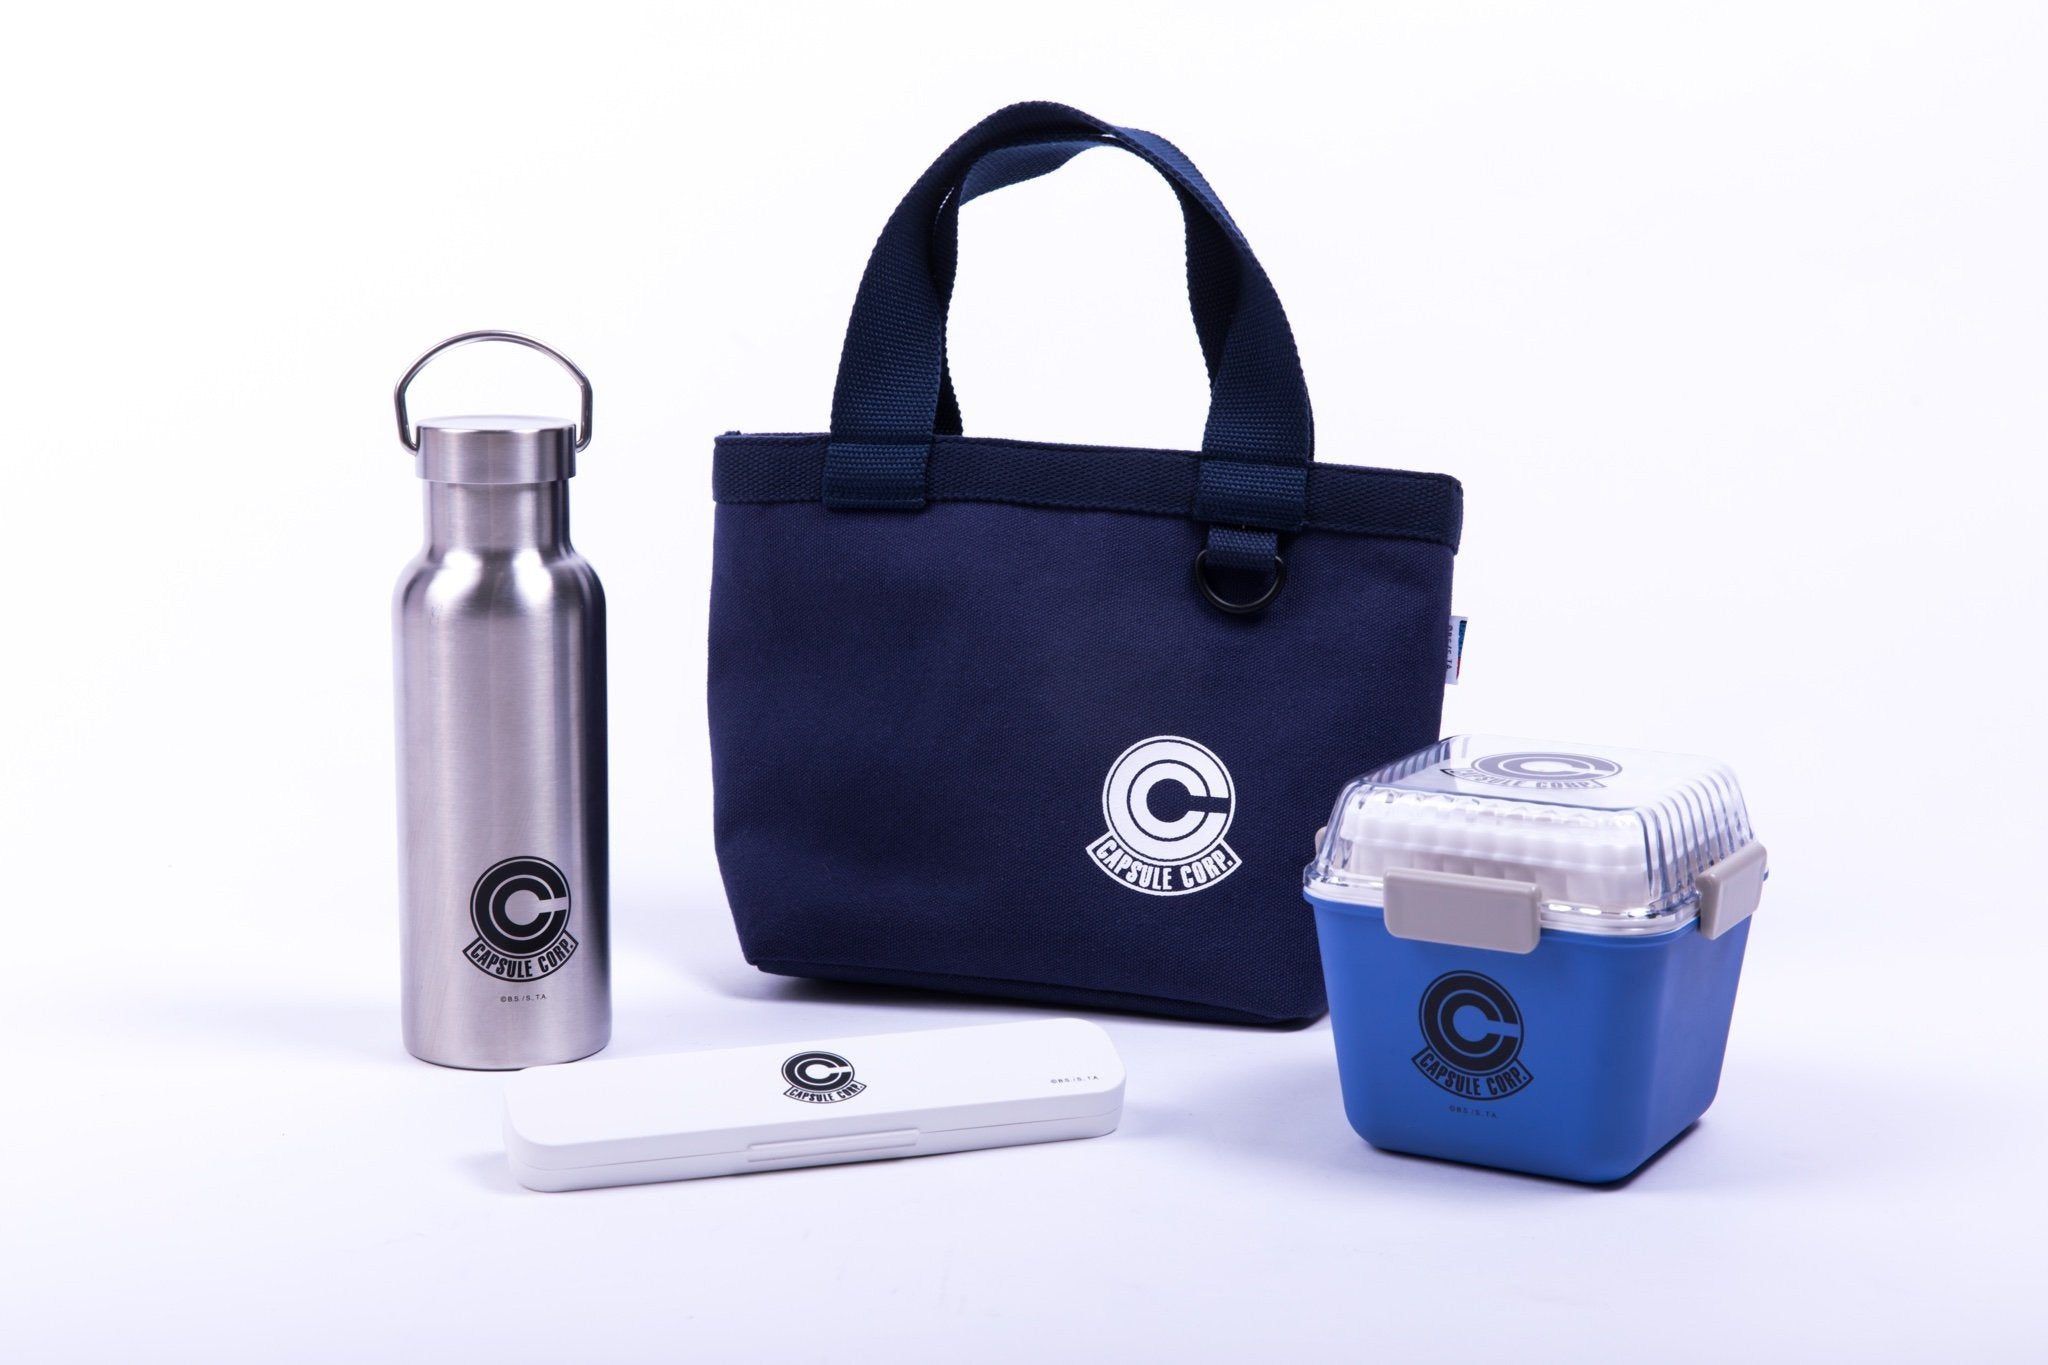 Capsule Corp. Cooler Bag by Bento&co - Bento&co Japanese Bento Lunch Boxes and Kitchenware Specialists